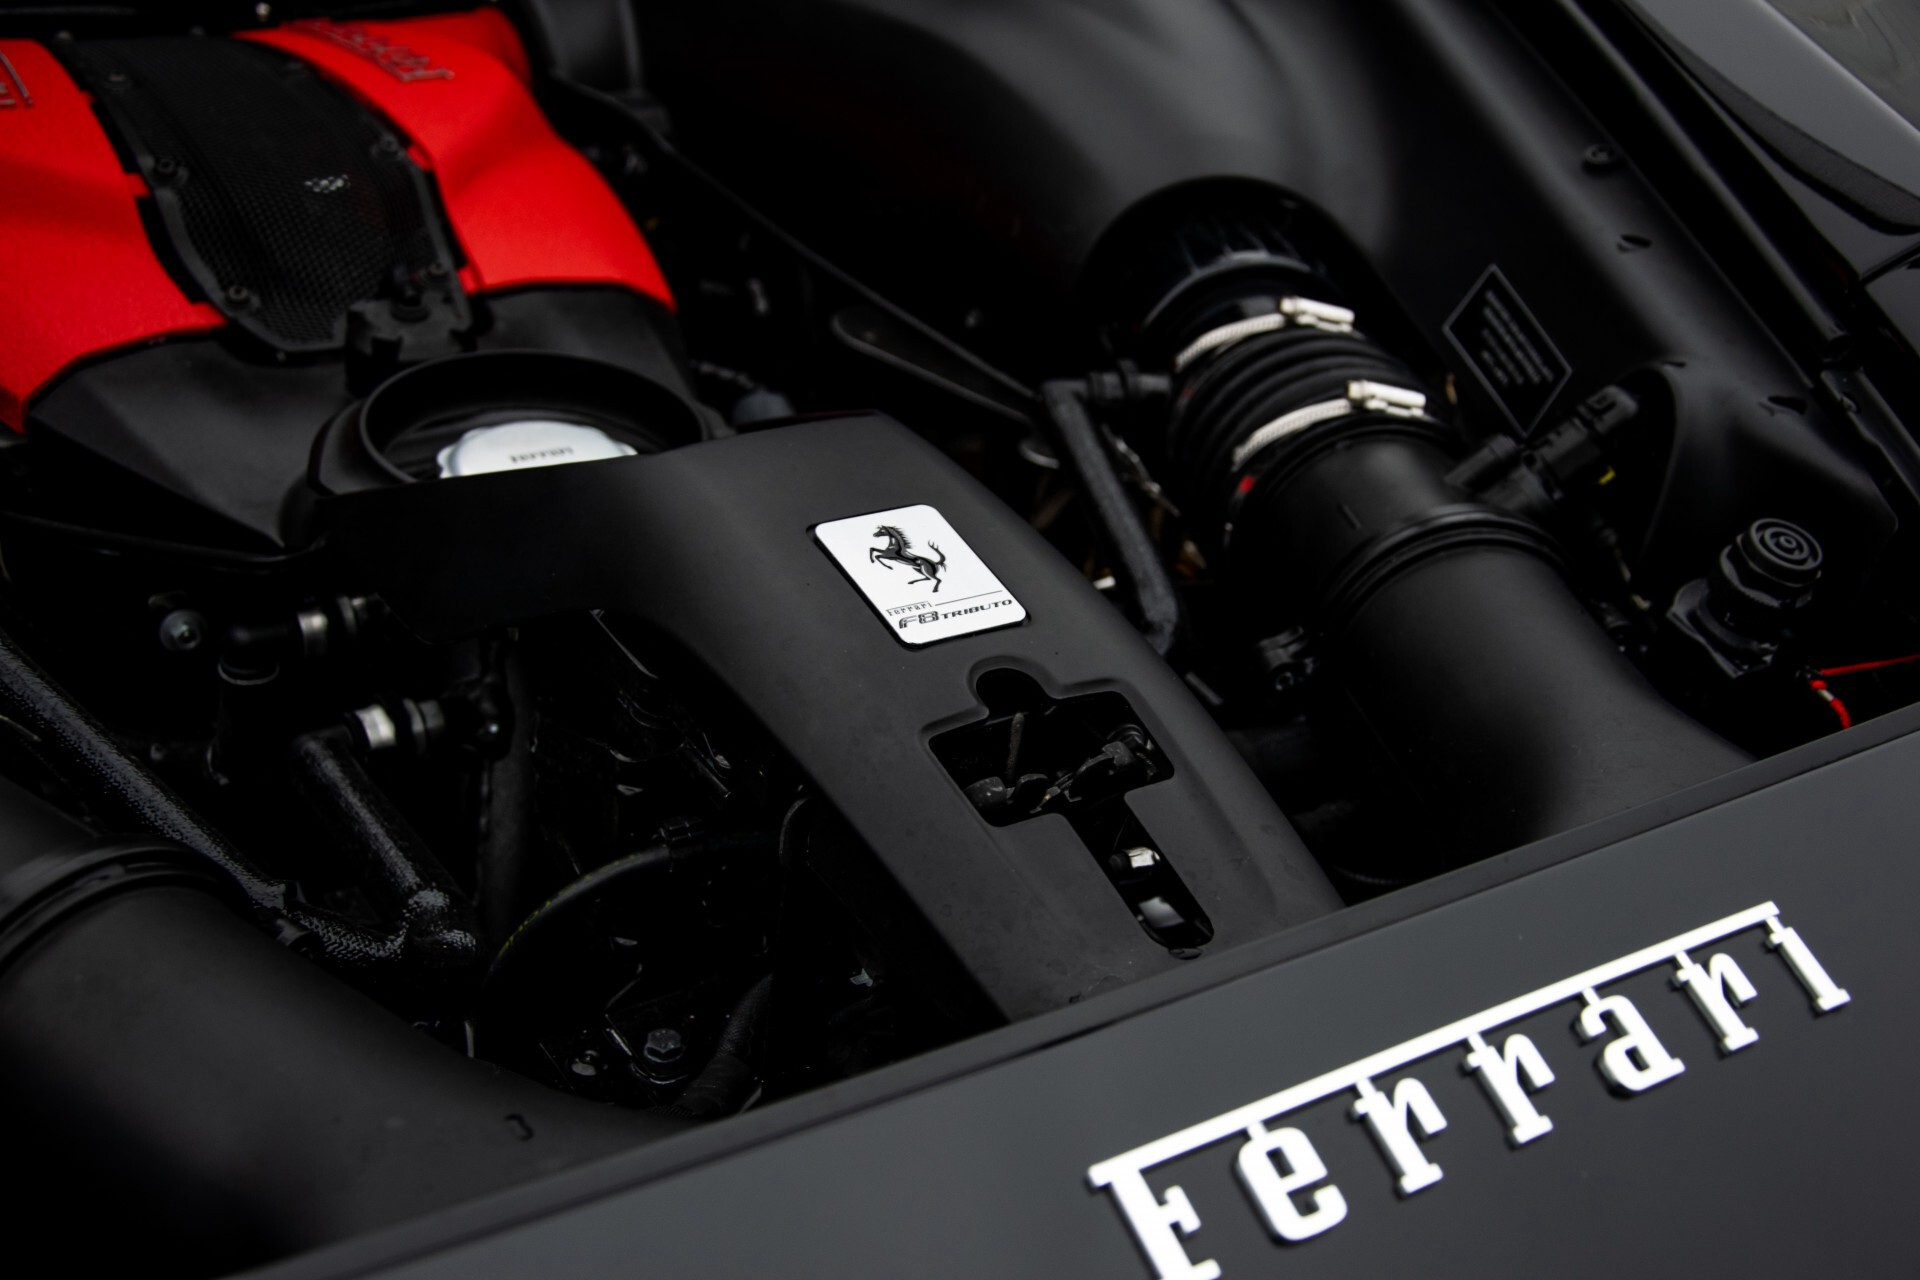 Ferrari F8 Tributo 3.9 V8 HELE Novitech Full Carbon/Lift/Racing Seats/Passenger Display/Hifi Foto 53